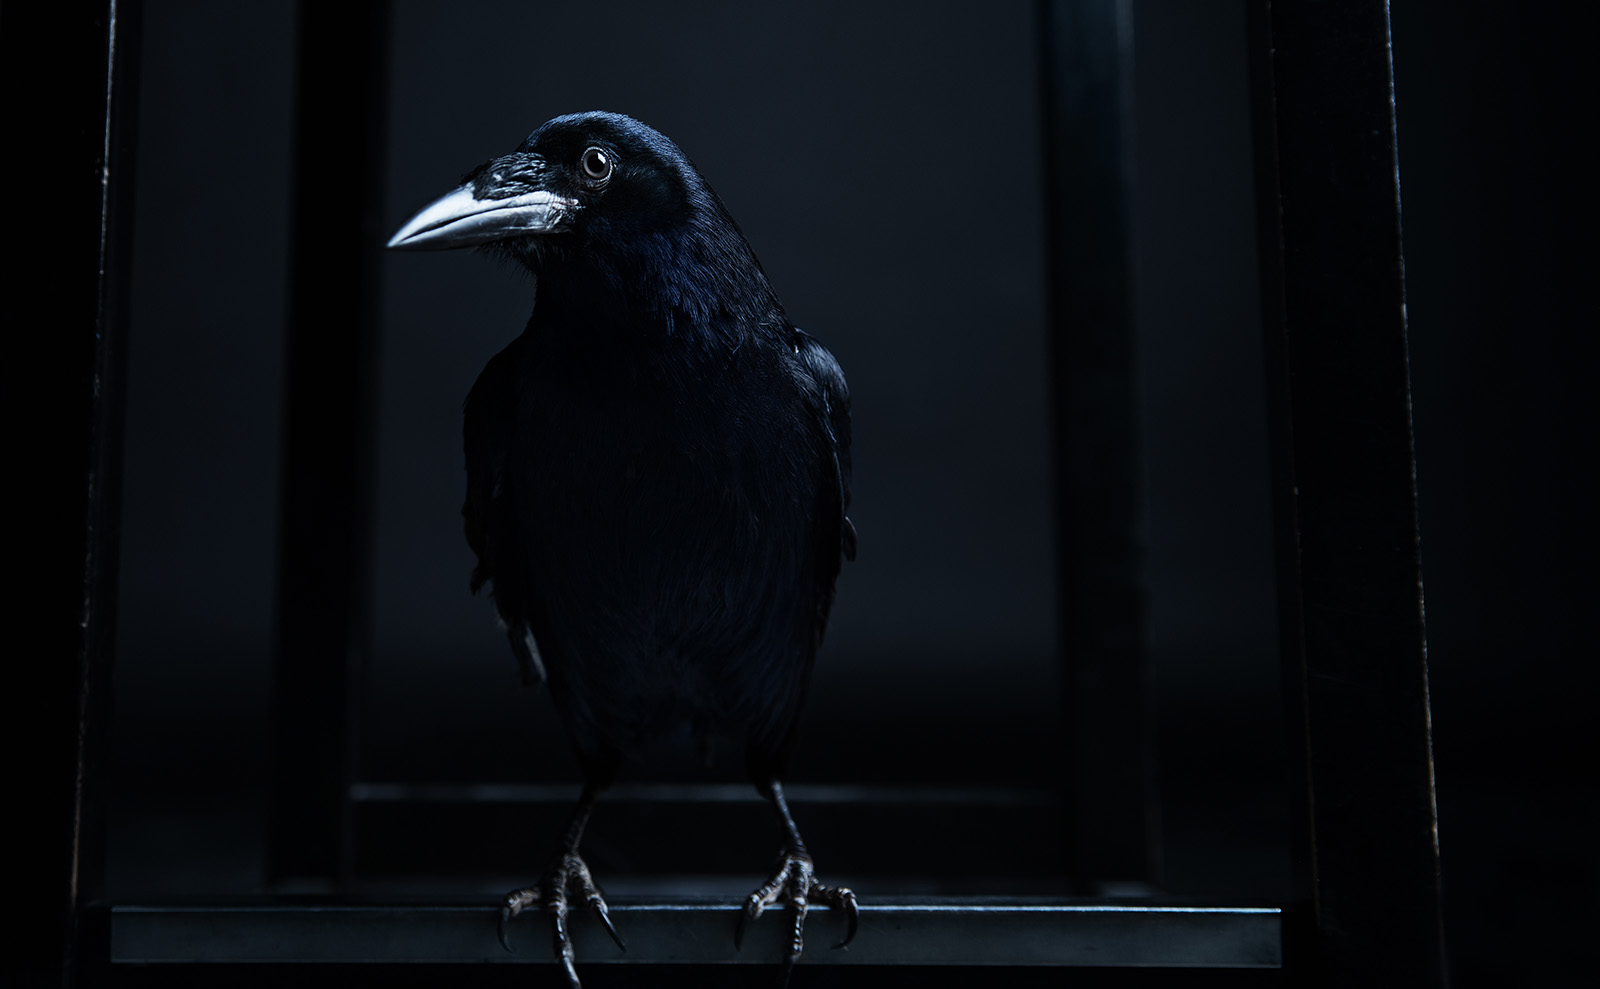 Edgar Allan Poe's 'The Raven' was Published Today in 1845